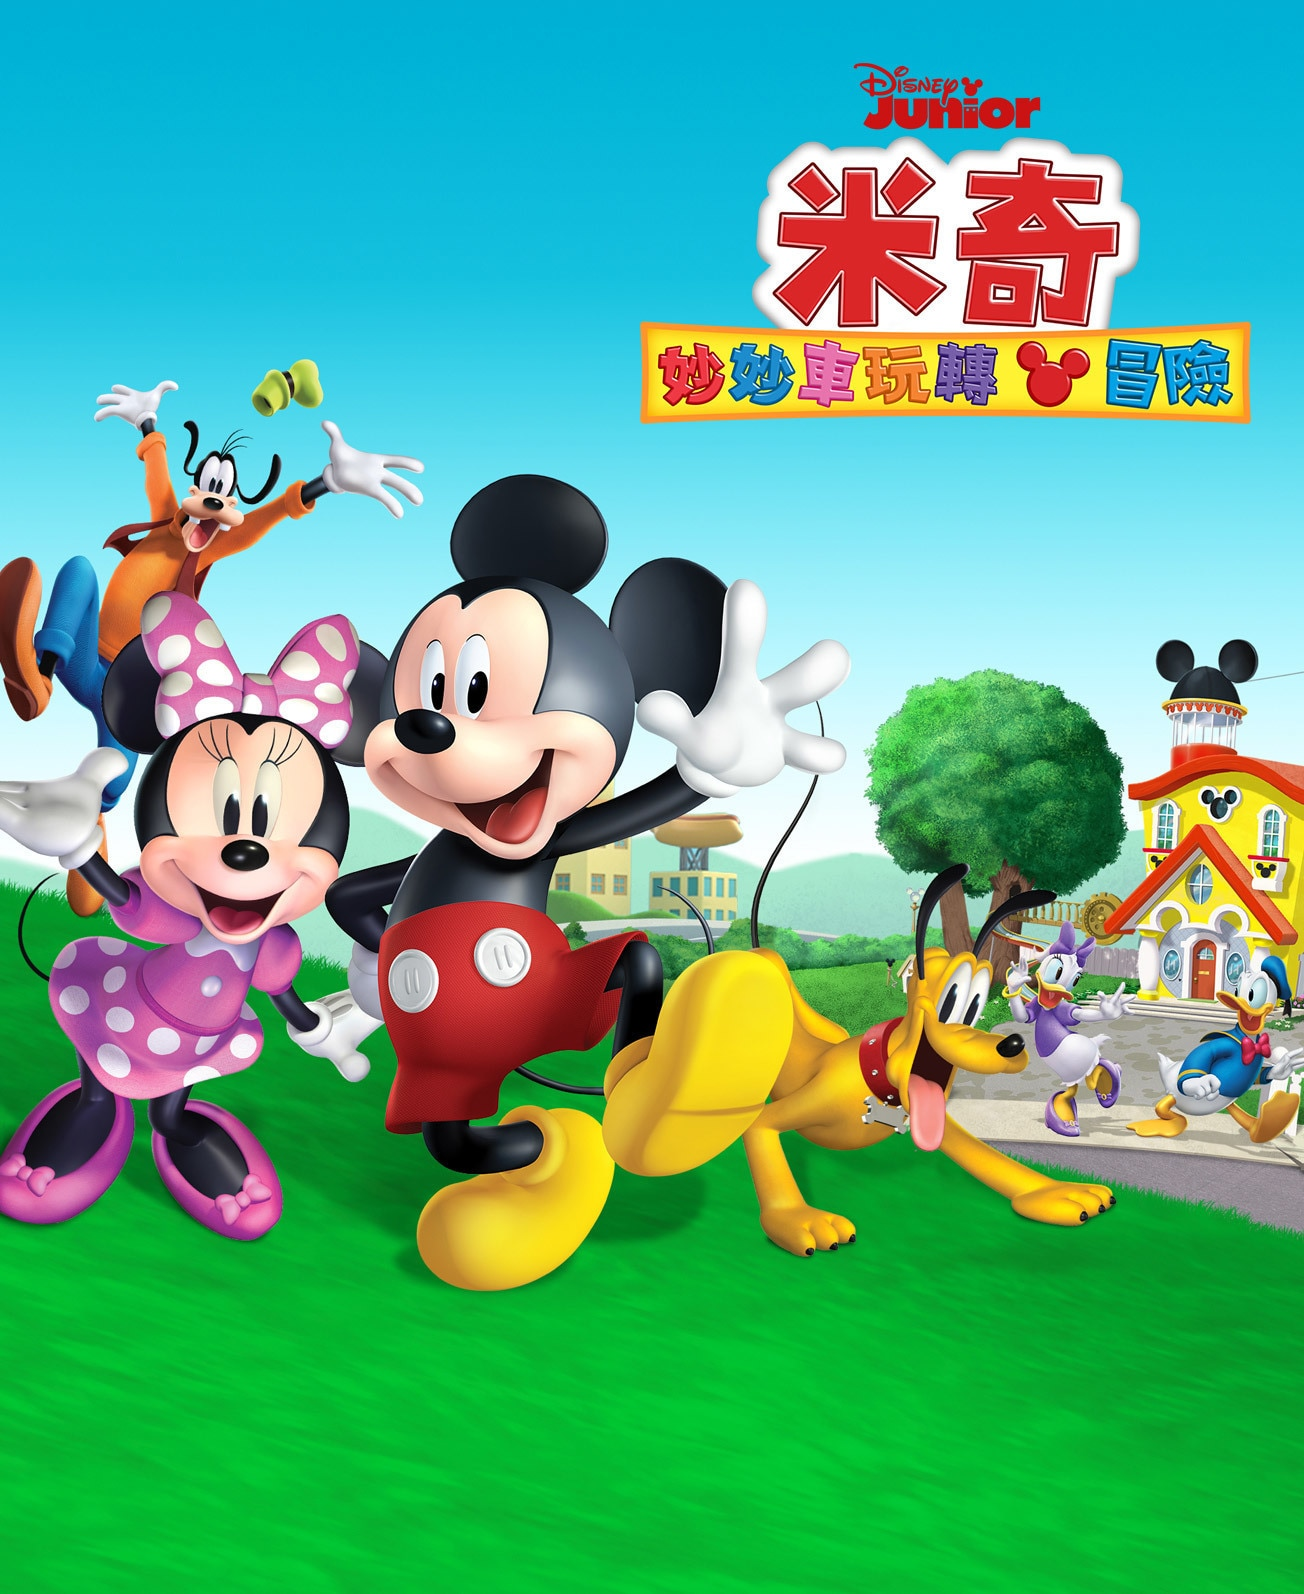 Disney Channel | Mickey mouse mixed up adventure